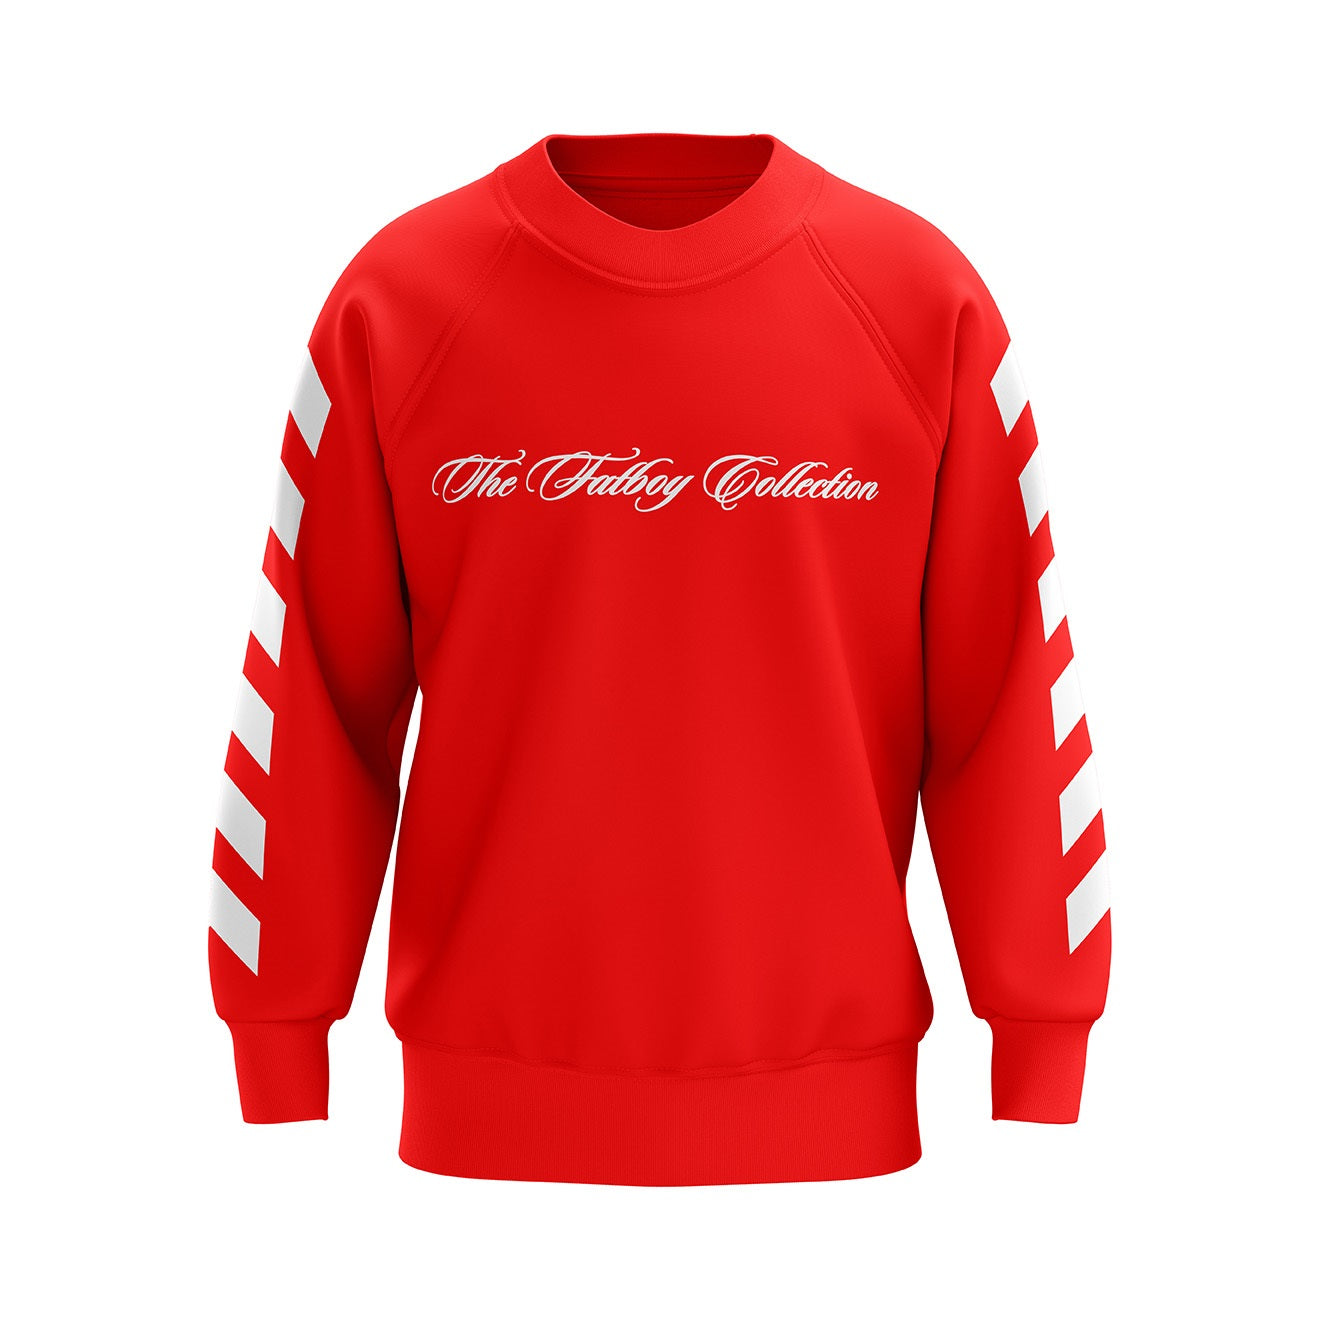 Fat Boy Collection Unisex Sweatshirt